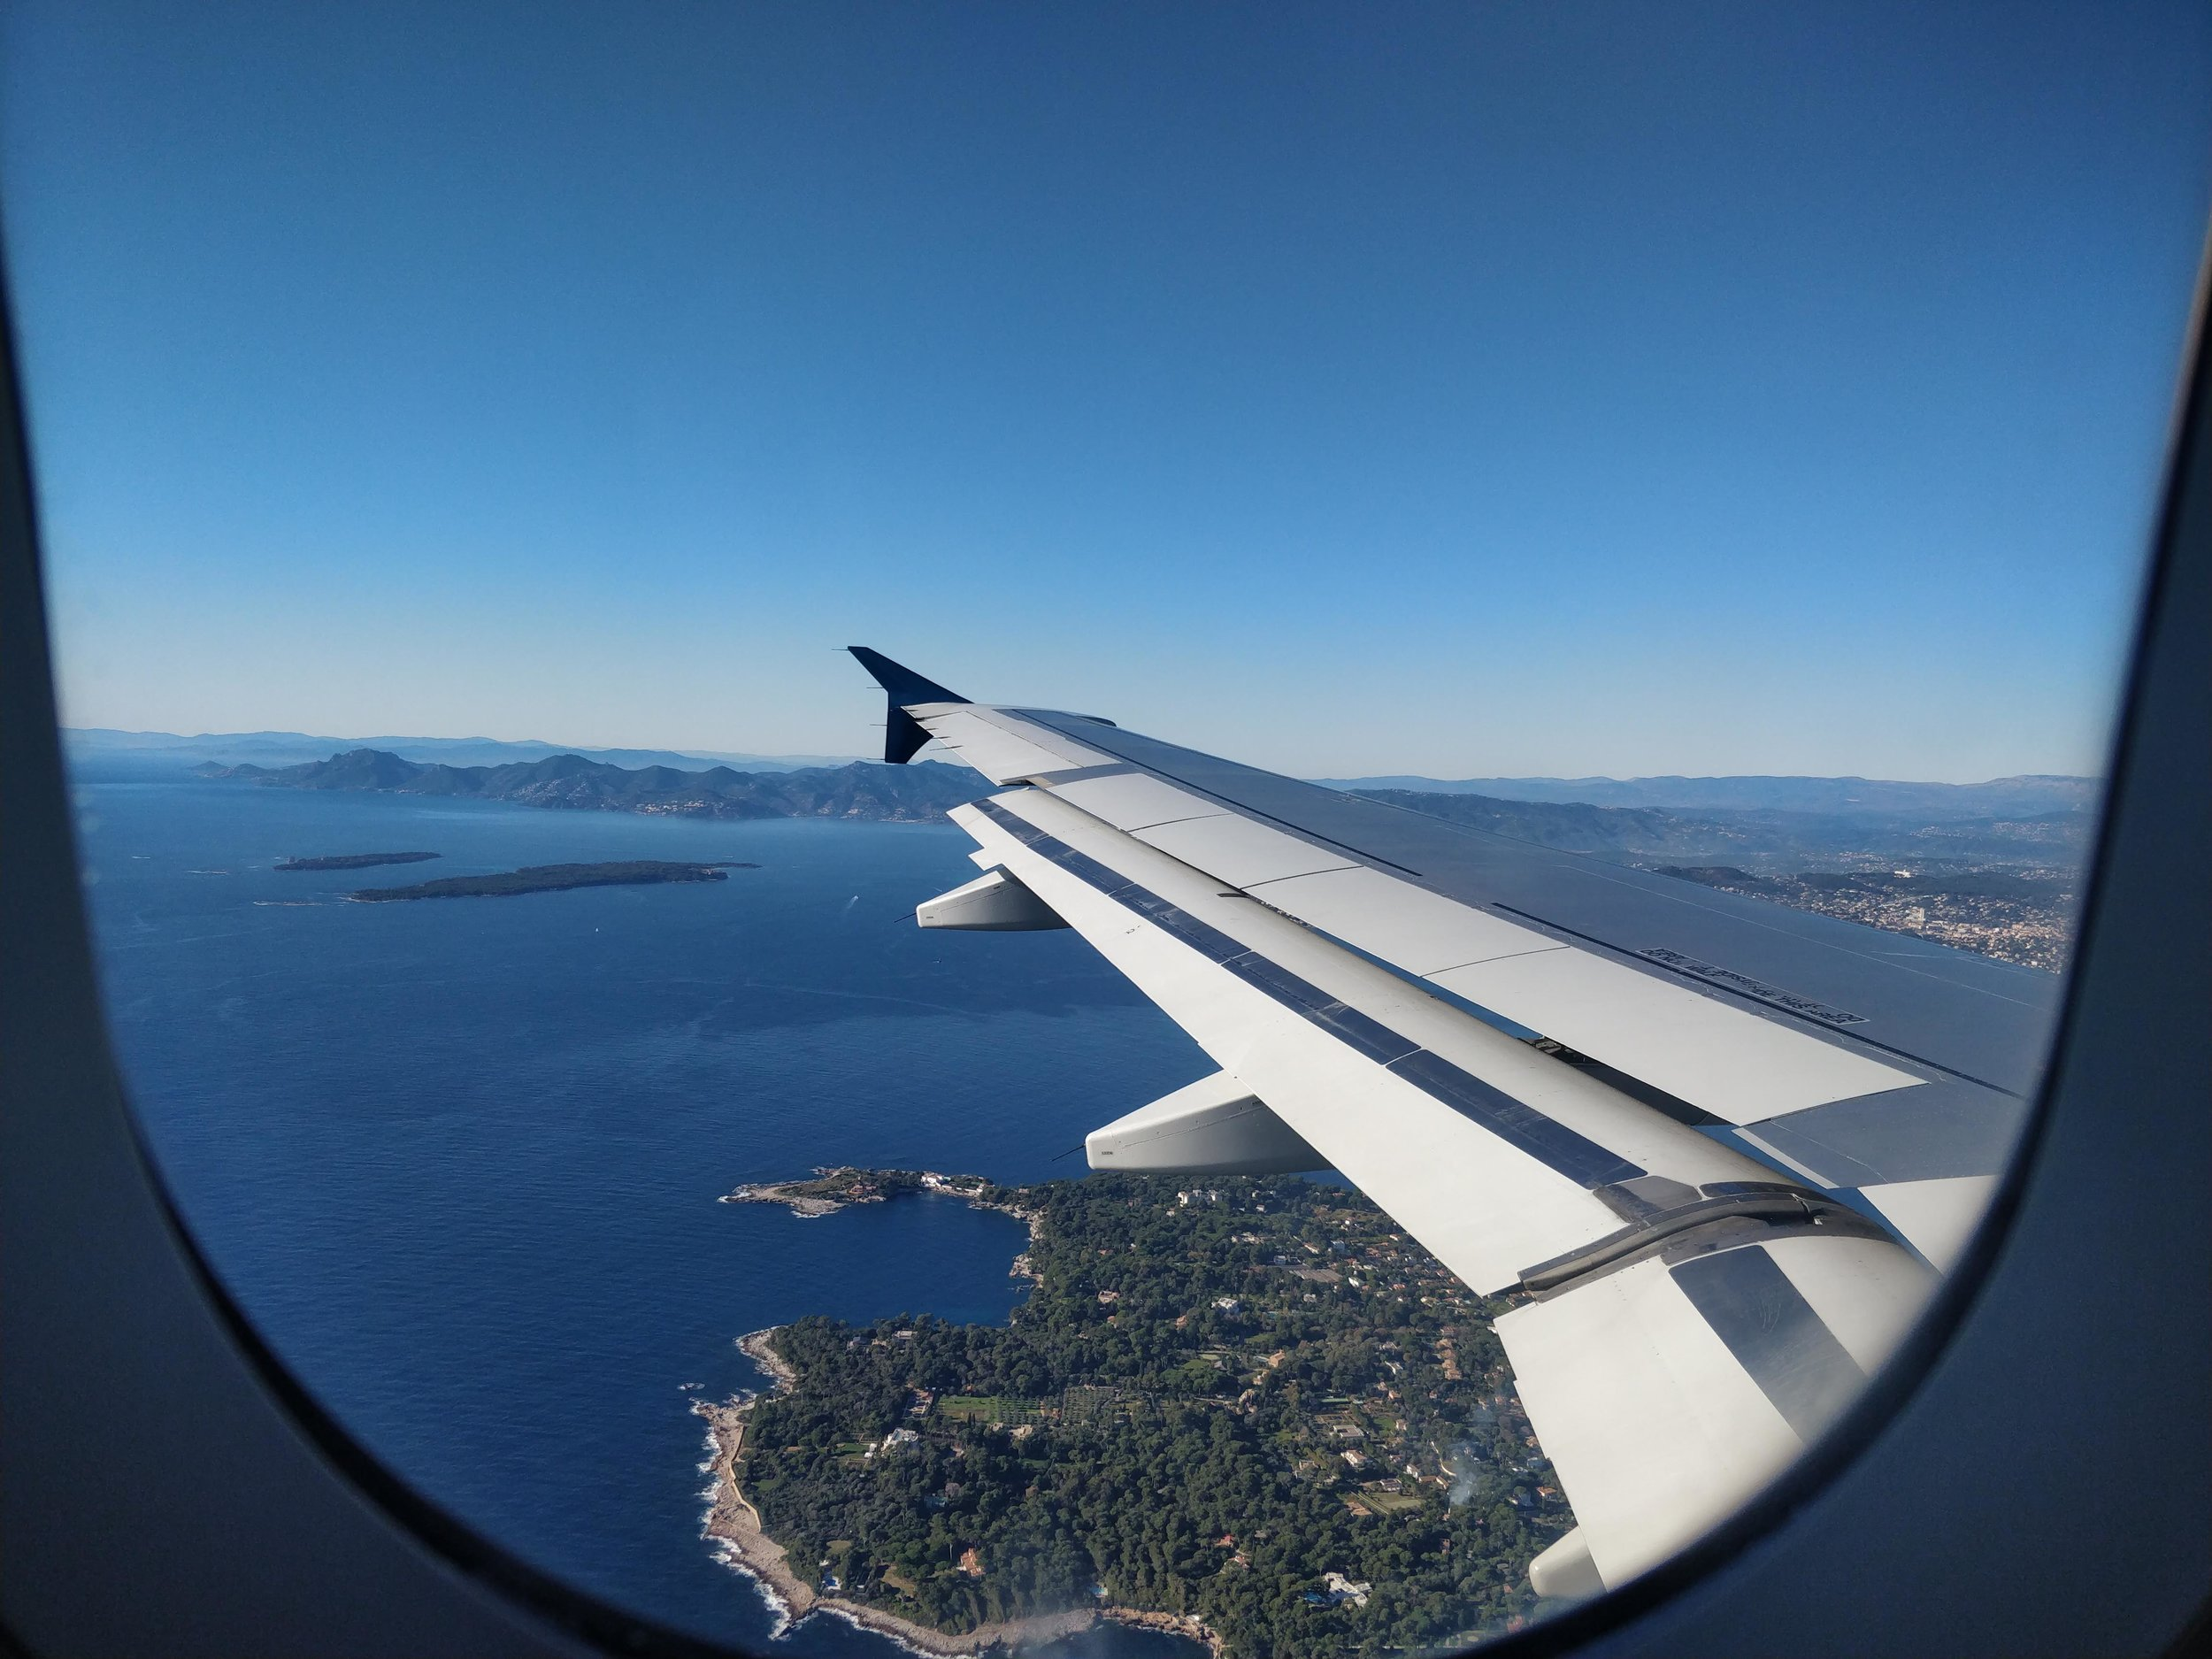 obligatory airplane wing photo.